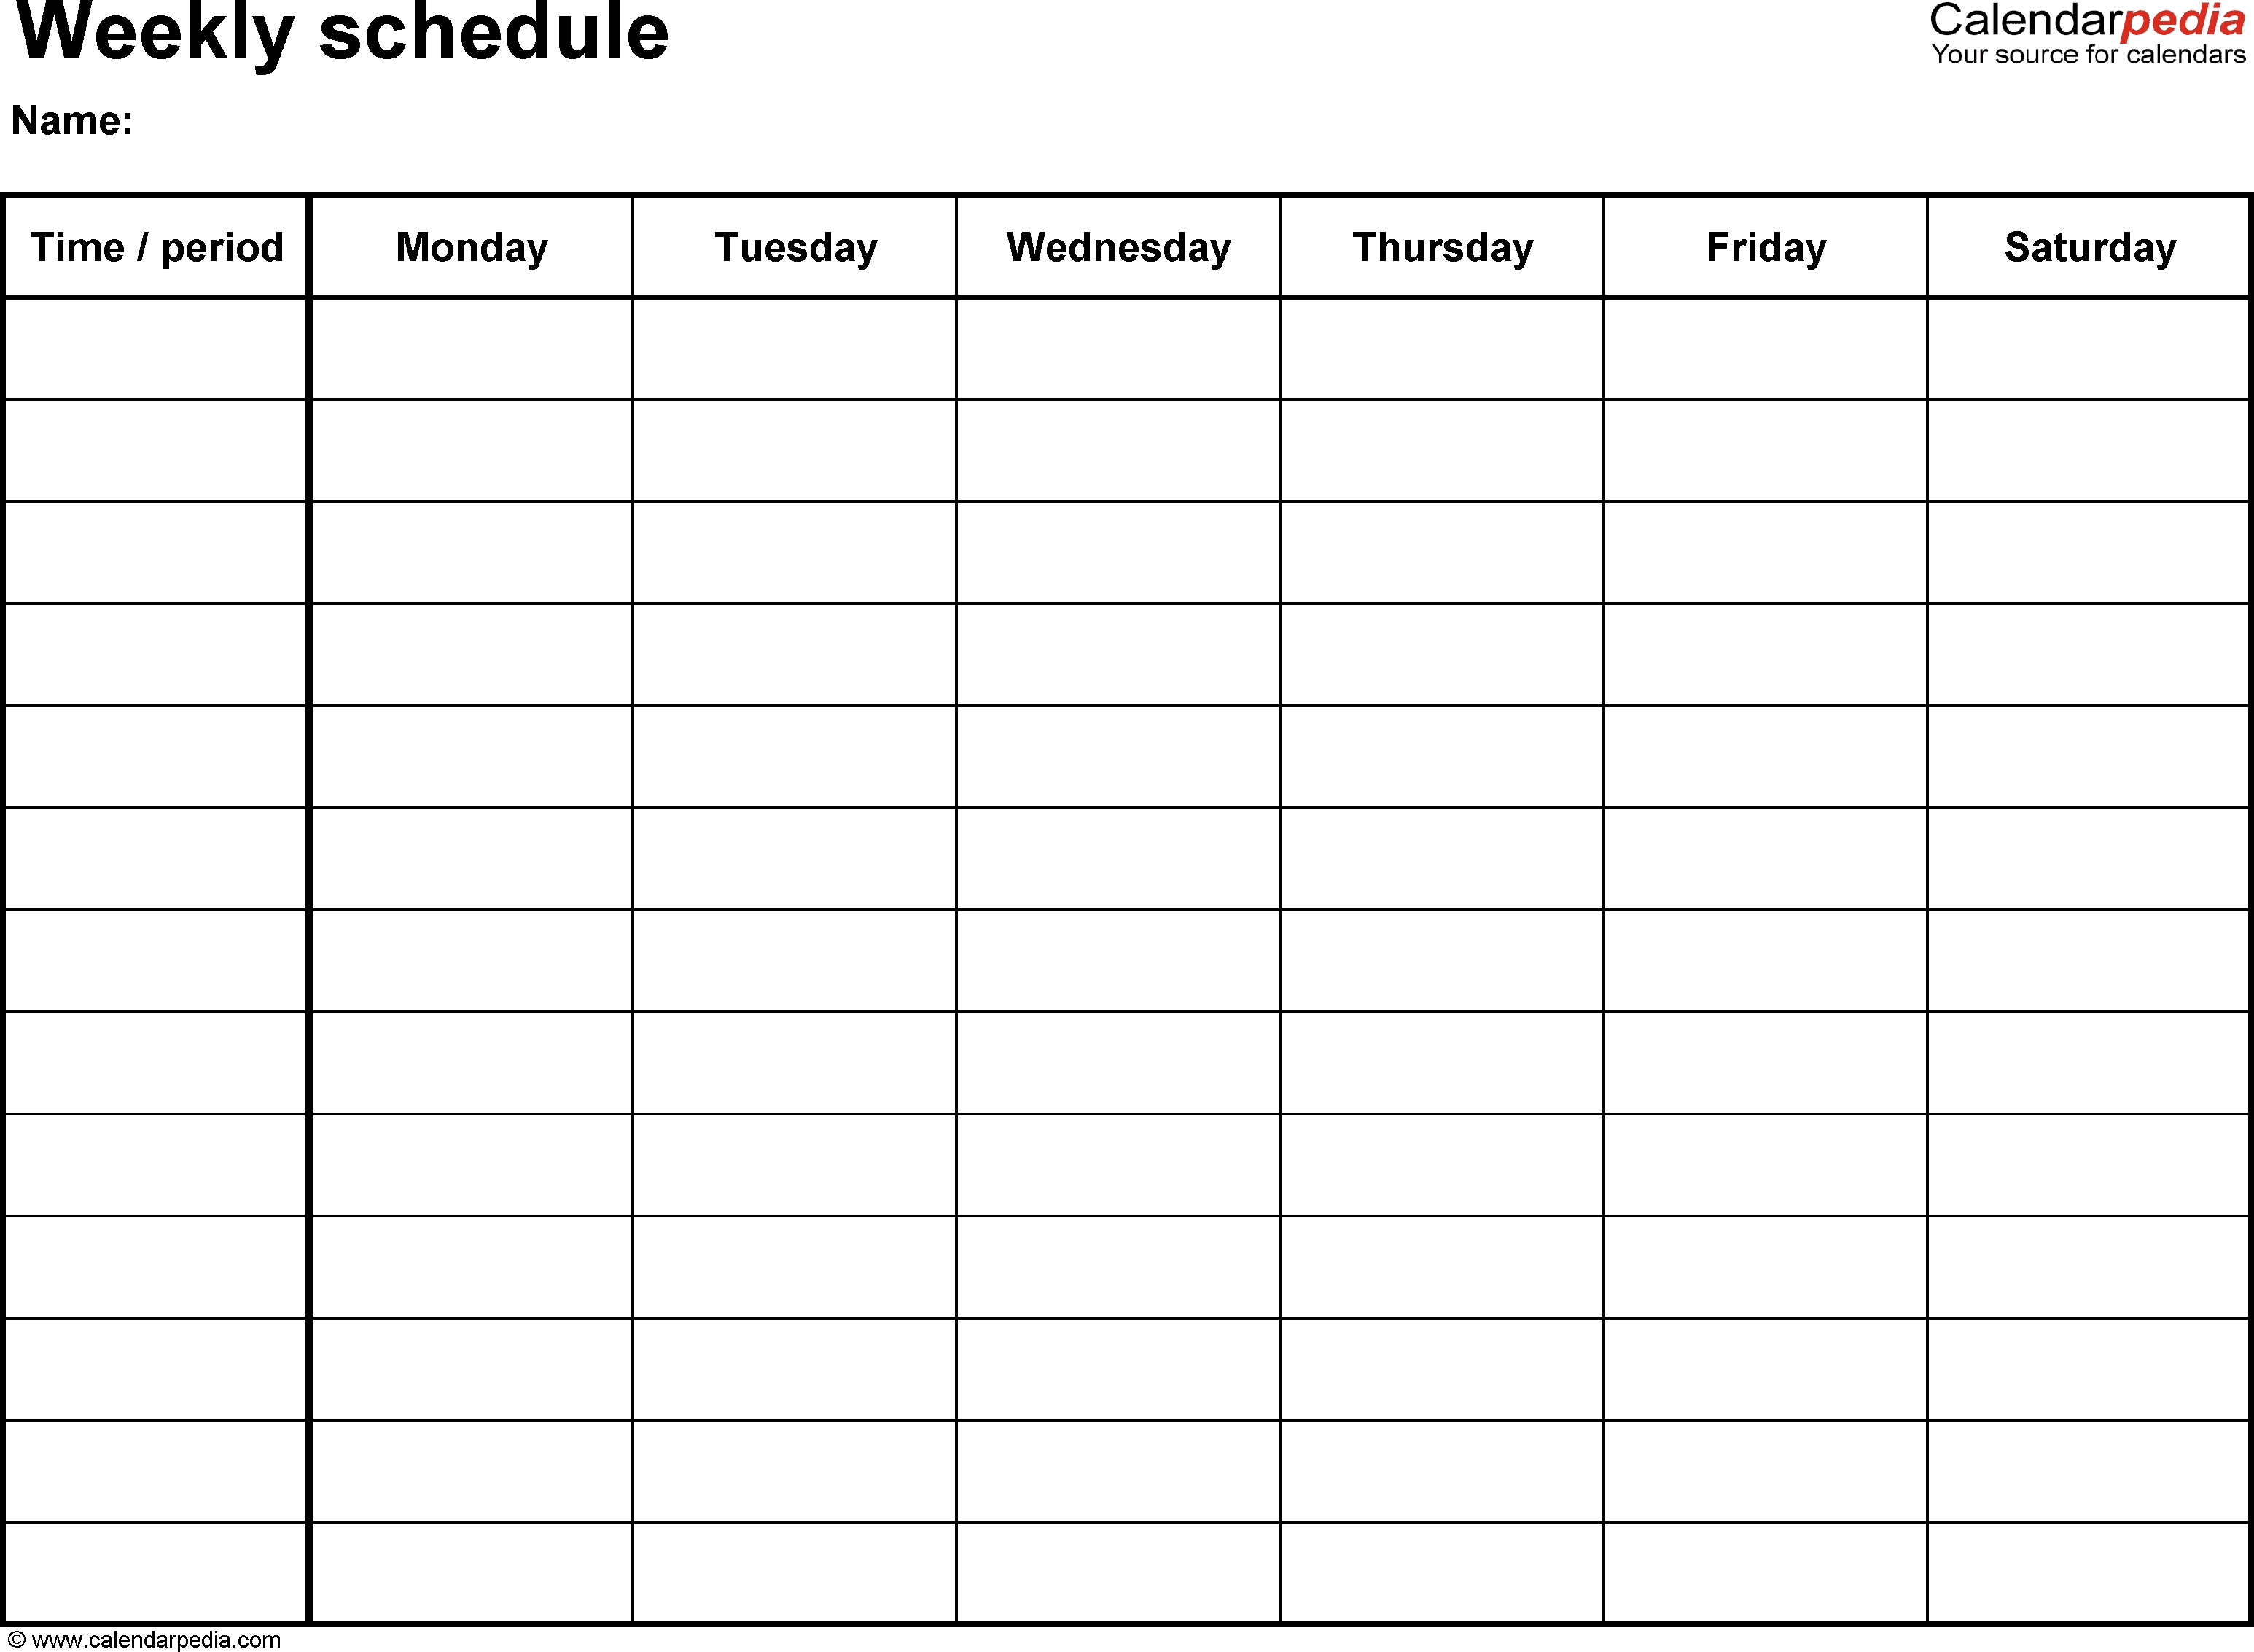 Free Weekly Schedule Templates For Excel - 18 Templates  One Week Daily Calendar Printable